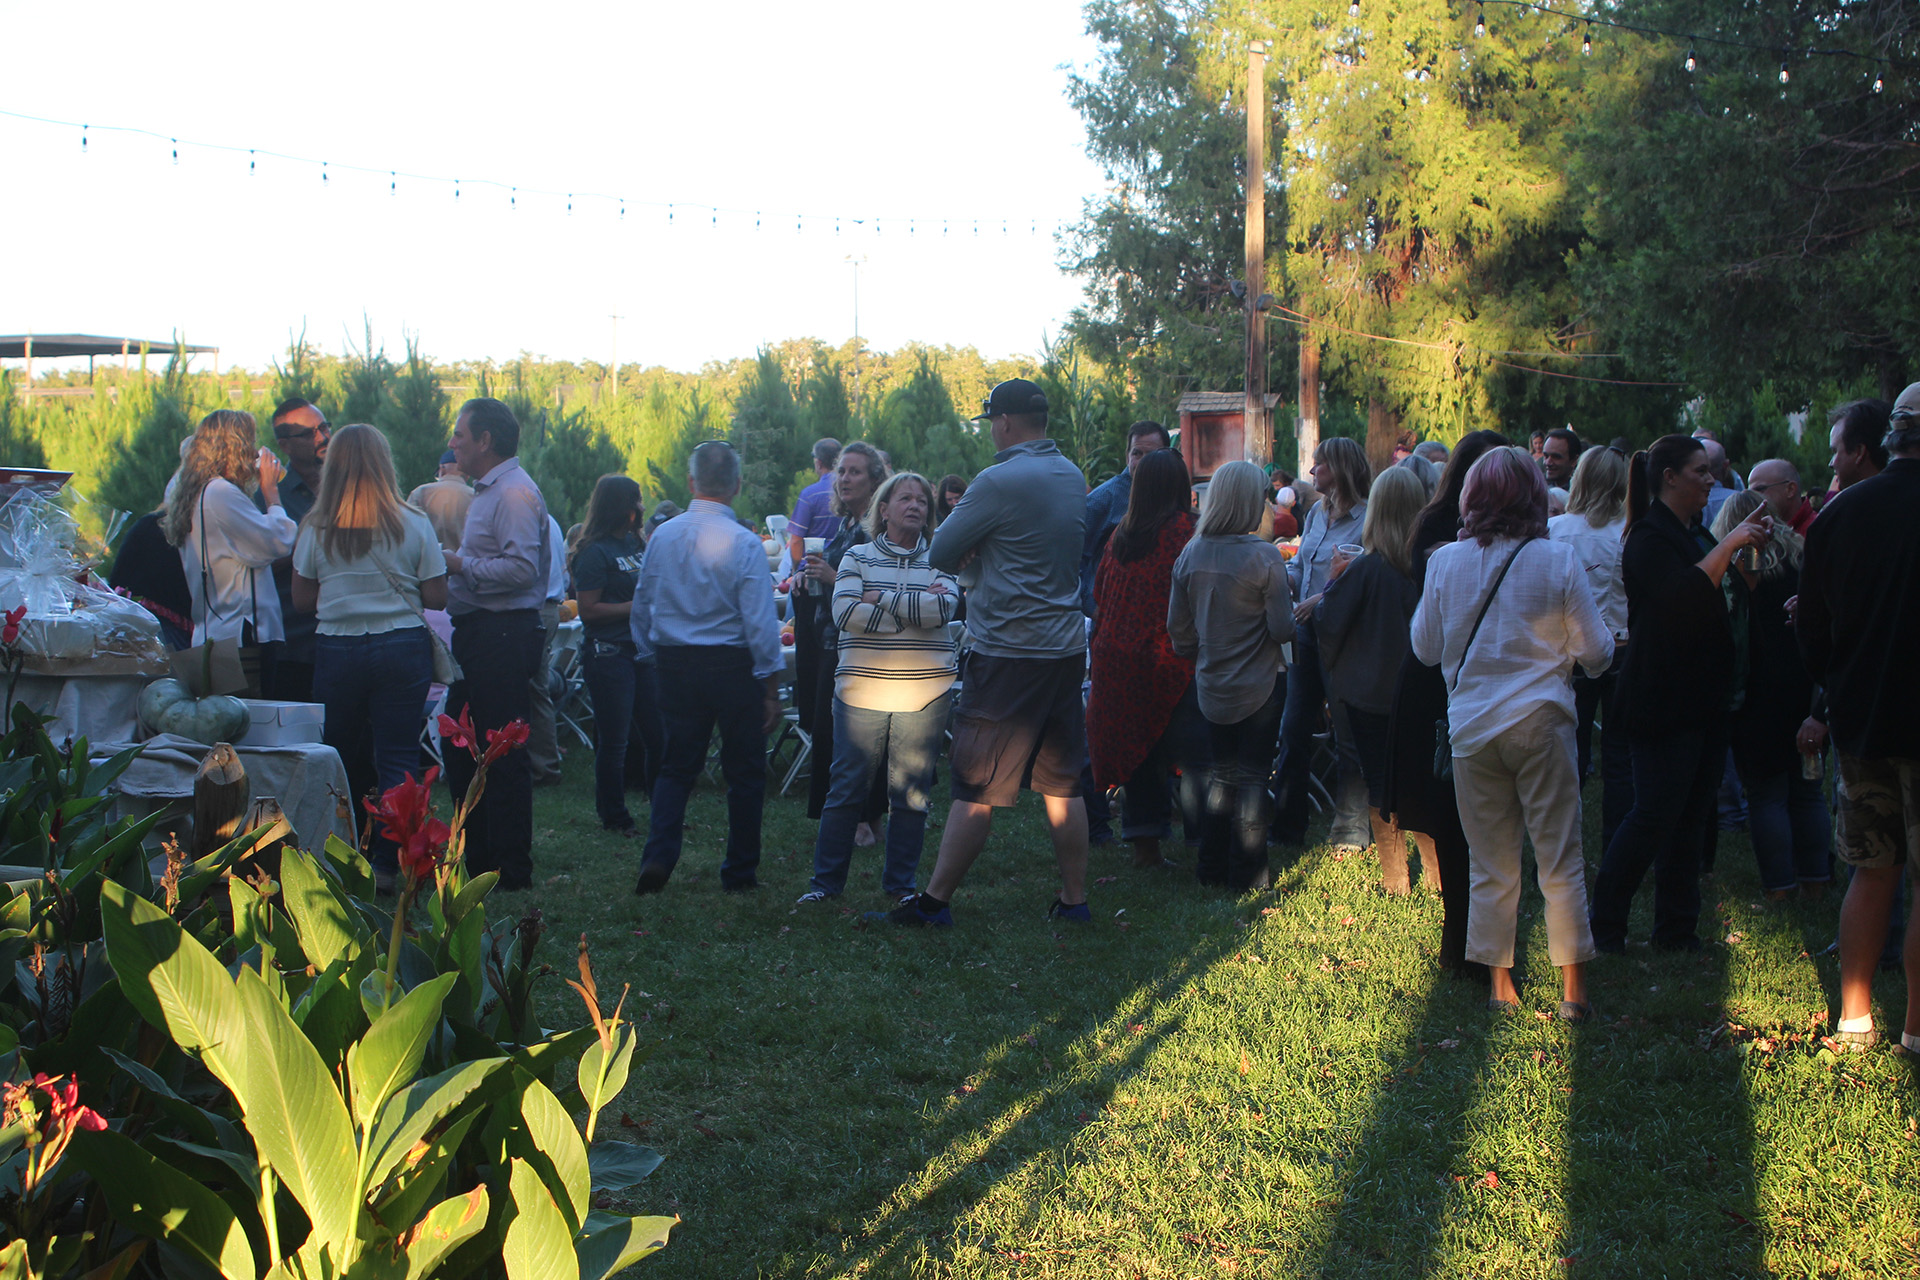 Outdoor event with group people talking together